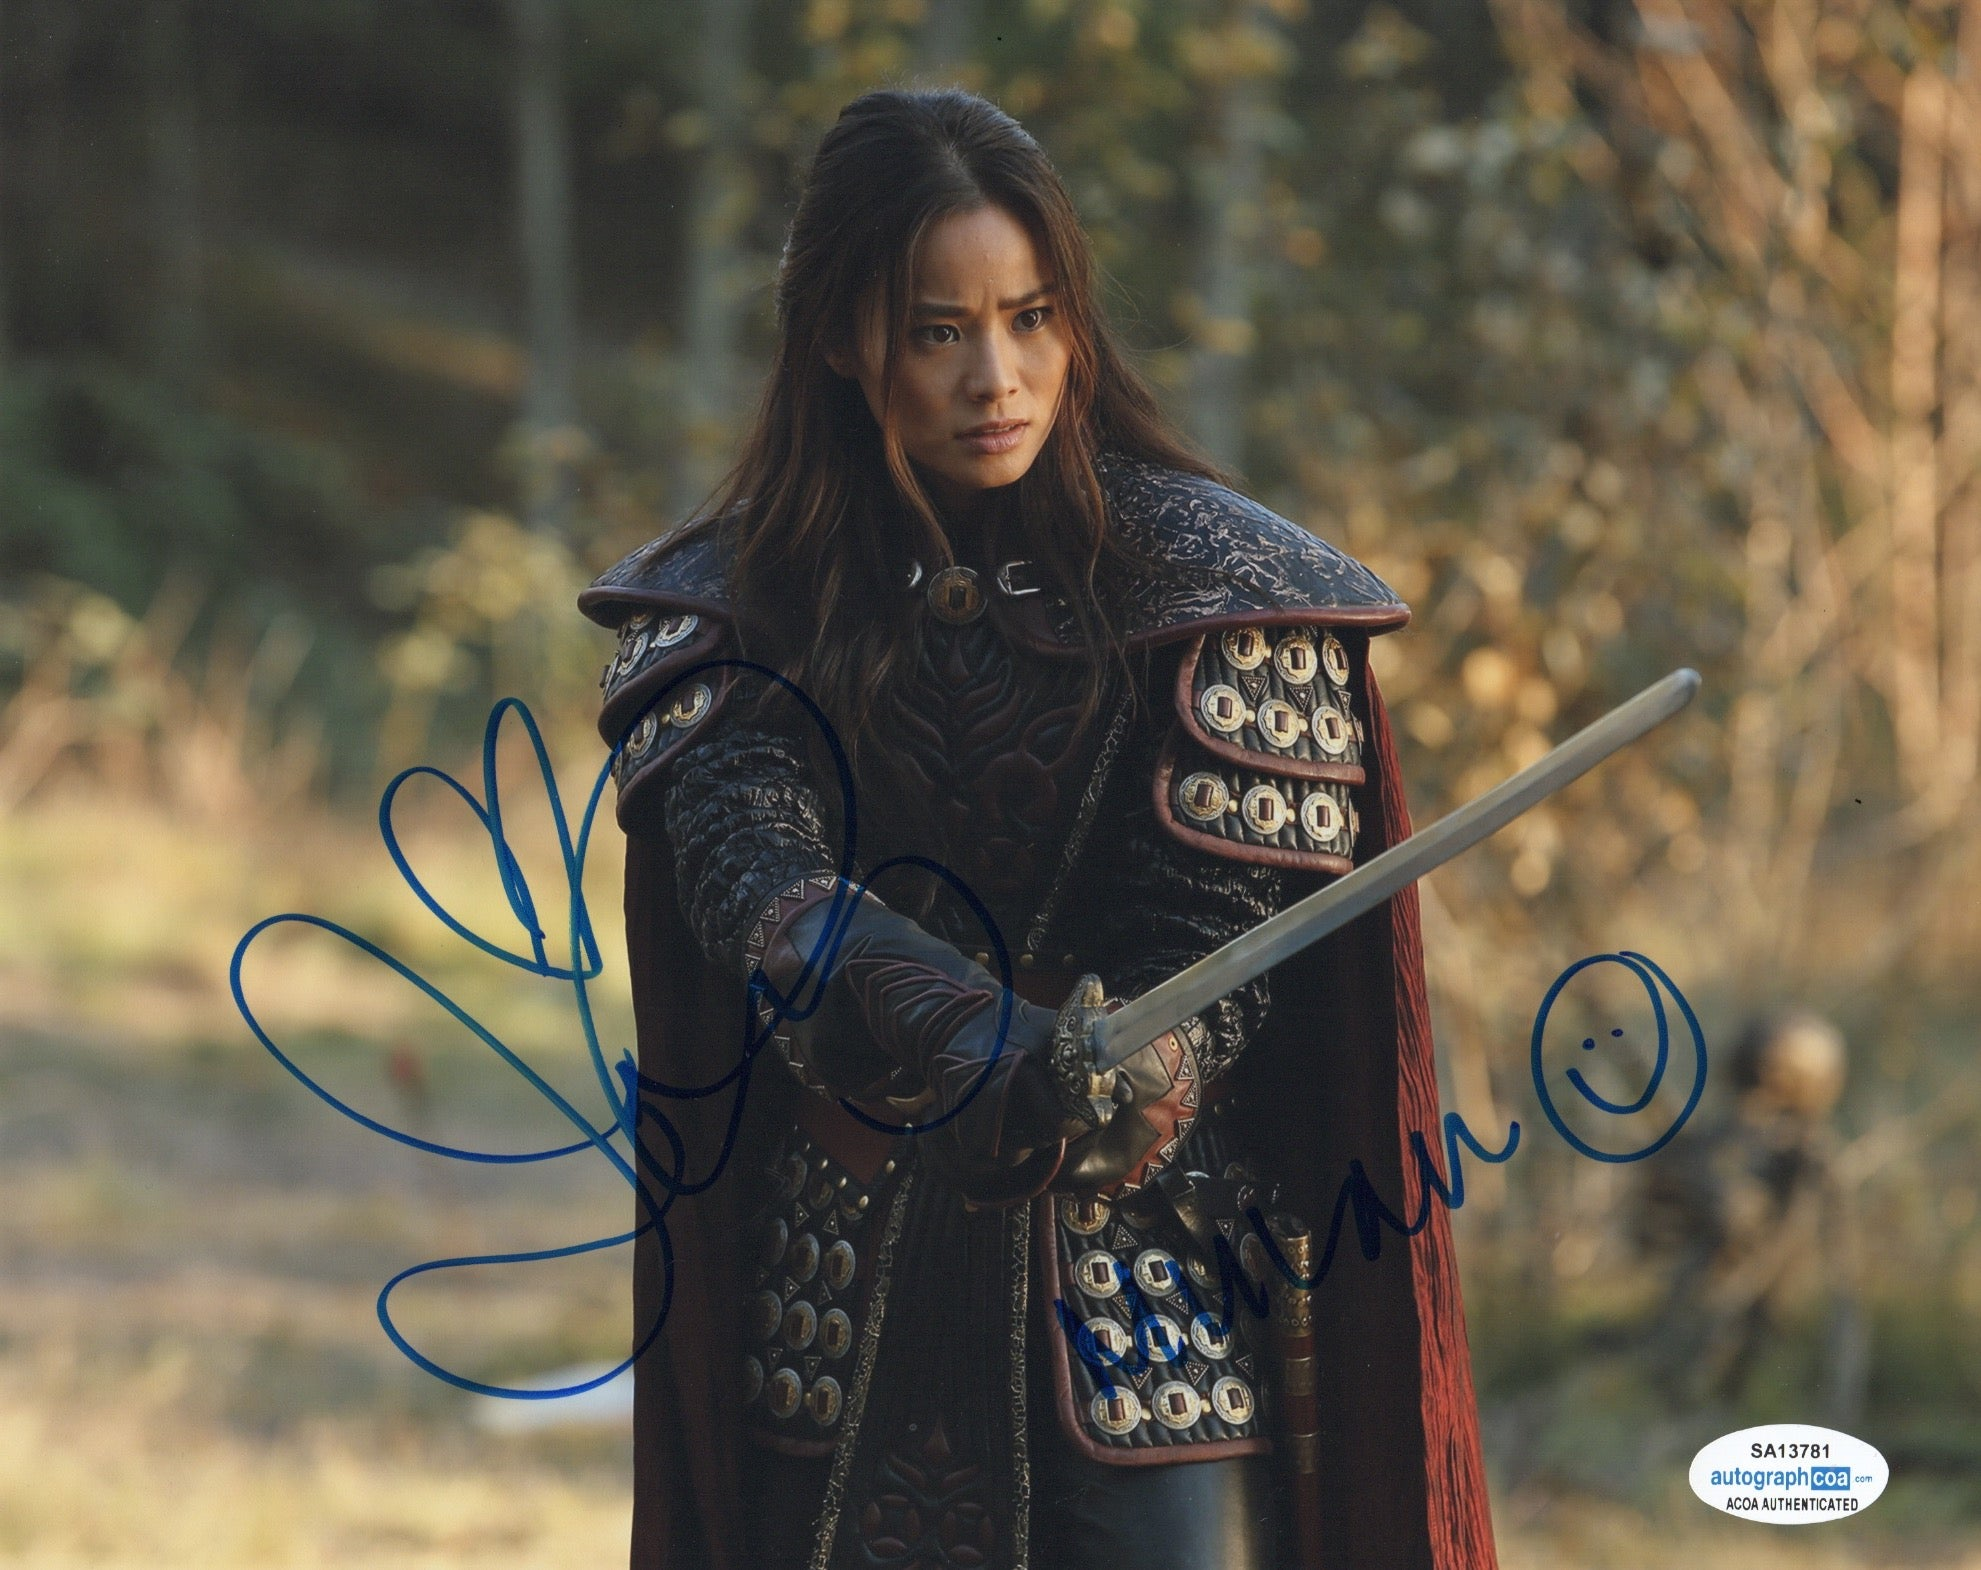 Jamie Chung Once Upon A Time Signed Autograph 8x10 Photo ACOA #5 - Outlaw Hobbies Authentic Autographs